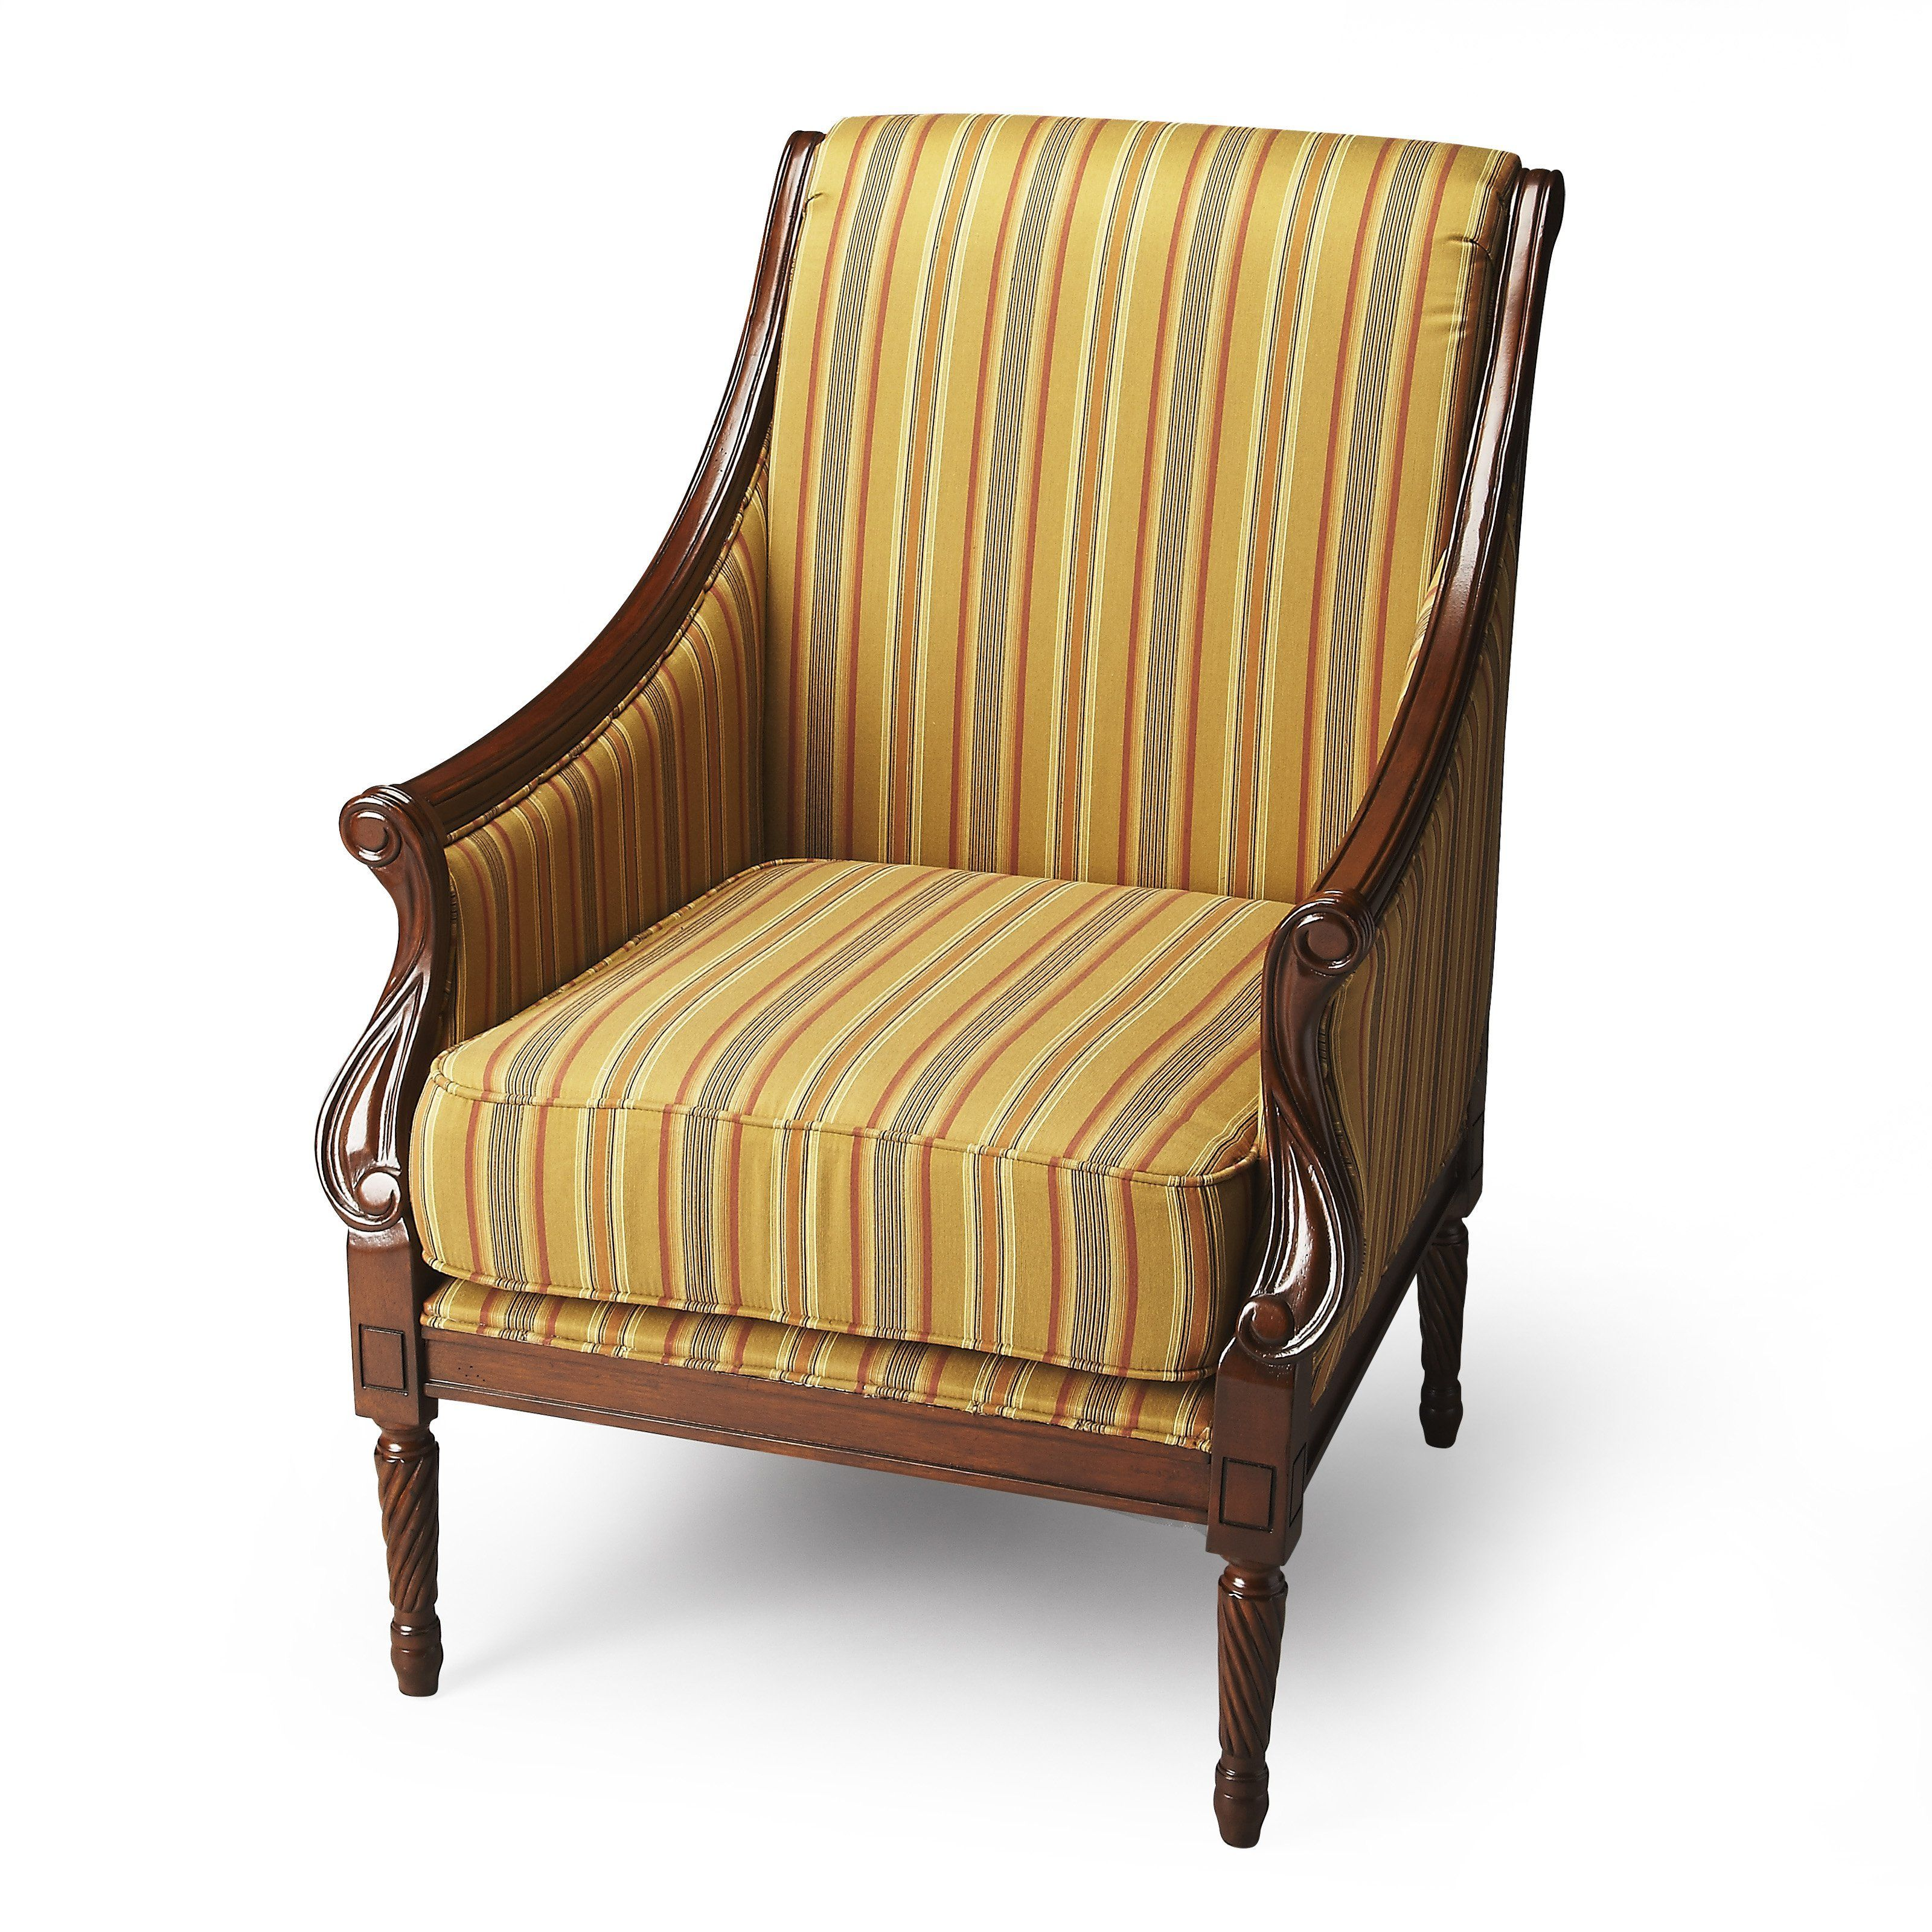 Genial Butler Wexford Accent Chair   Meet Your New Favorite Chair! The Butler  Wexford Accent Chair Features Top Quality Upholstery Fabric In Rich Stripes.